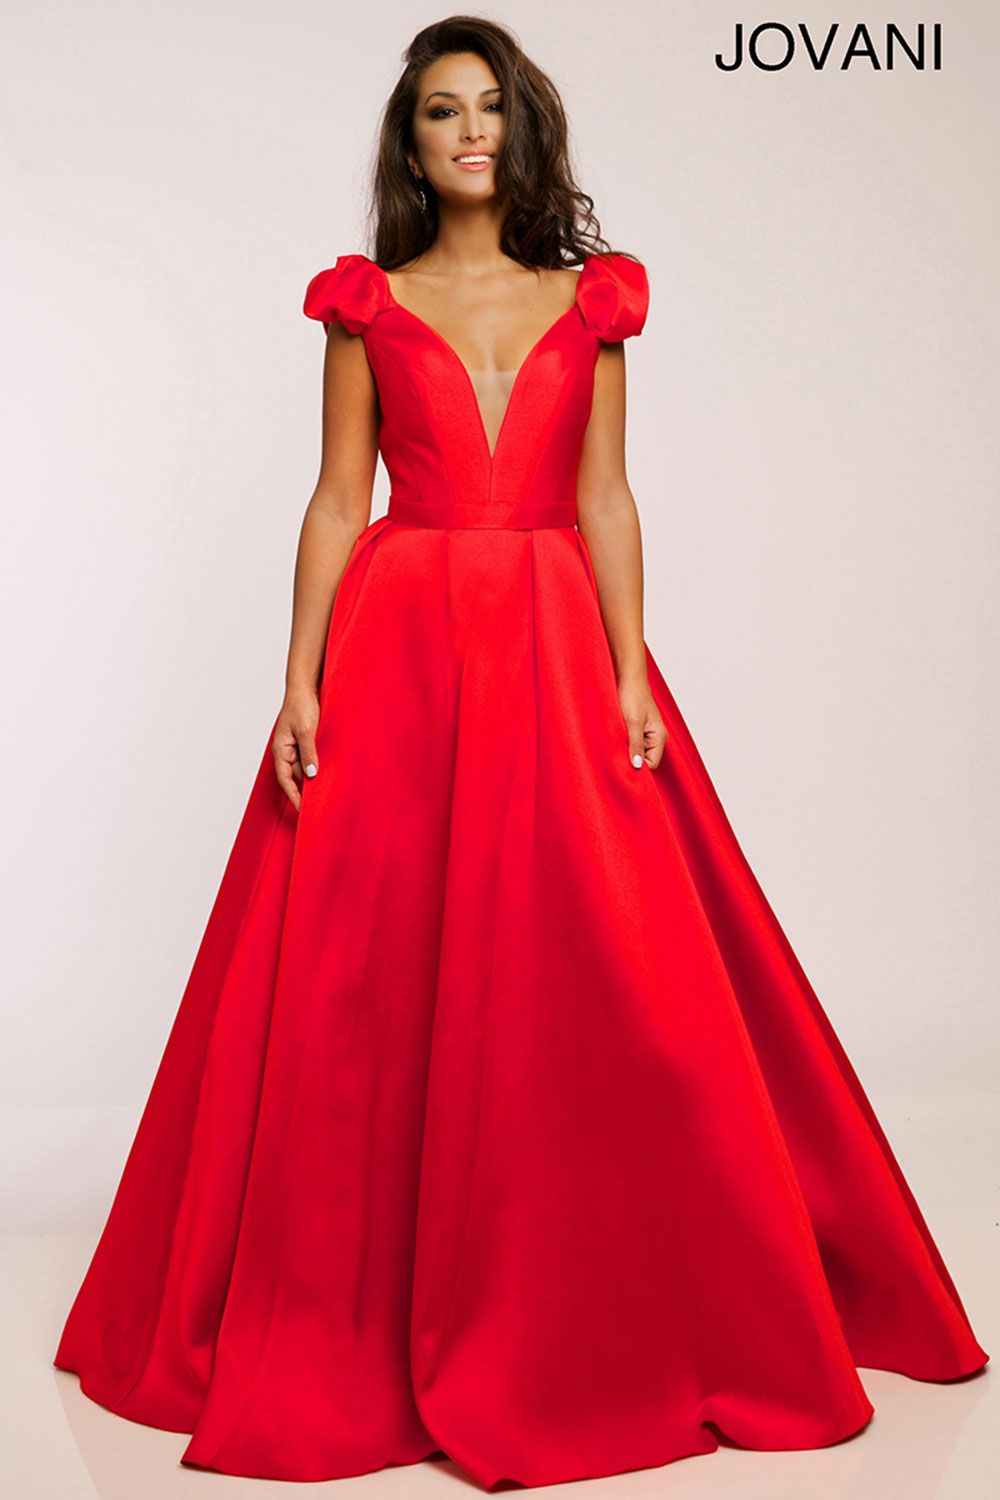 Red Jovani Ballgown 88999 | Jovani | Pinterest | Prom, Gowns and Formal